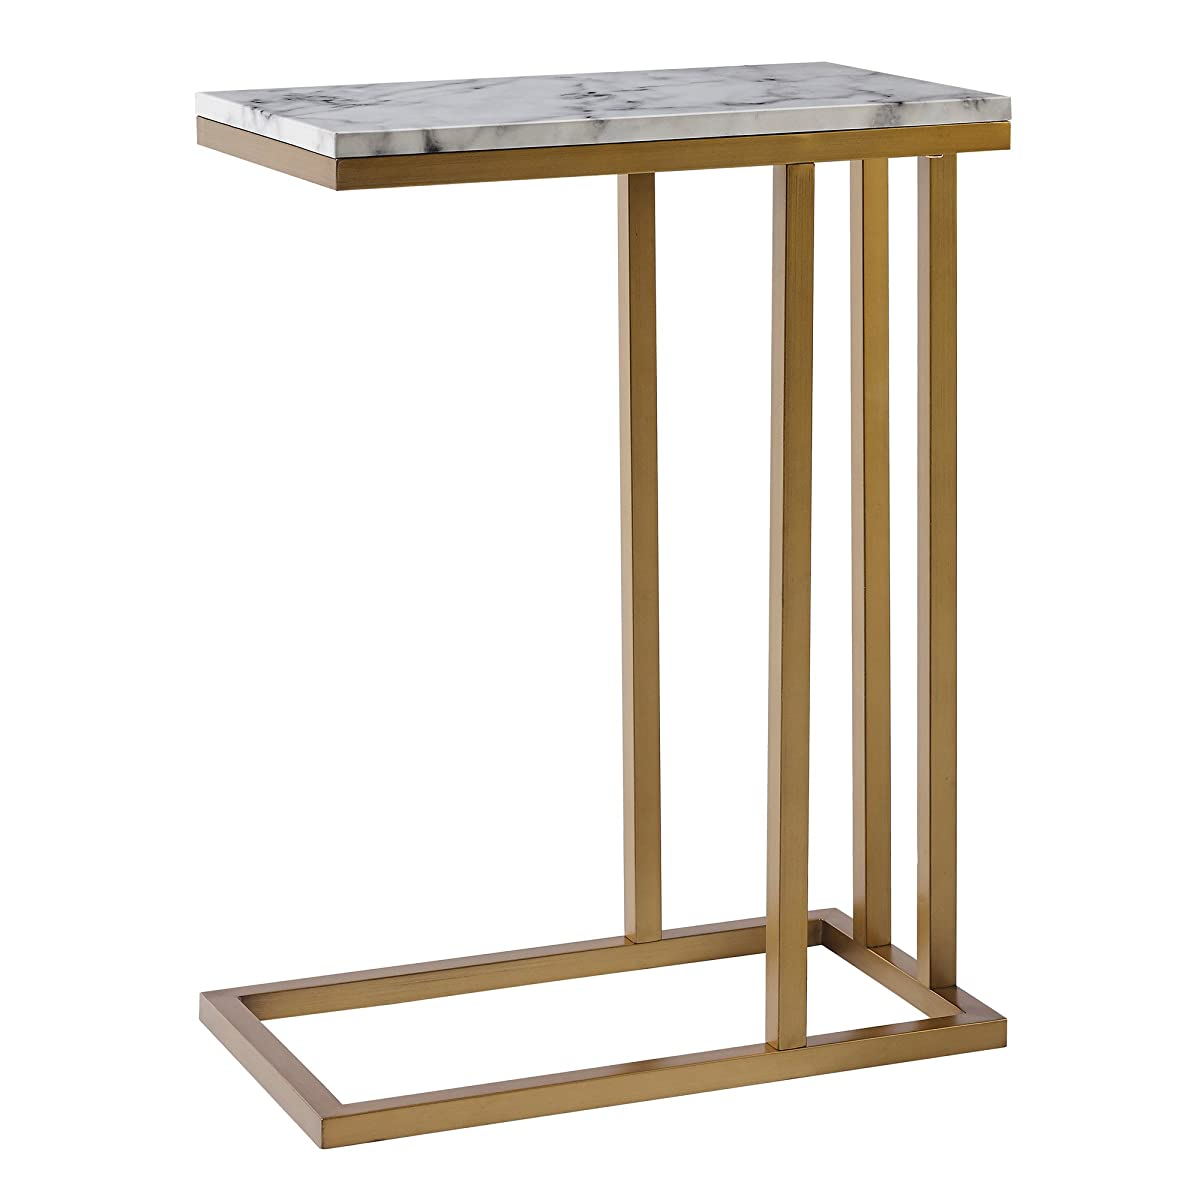 Versanora - Marmo C Shape Table - Faux Marble /Brass